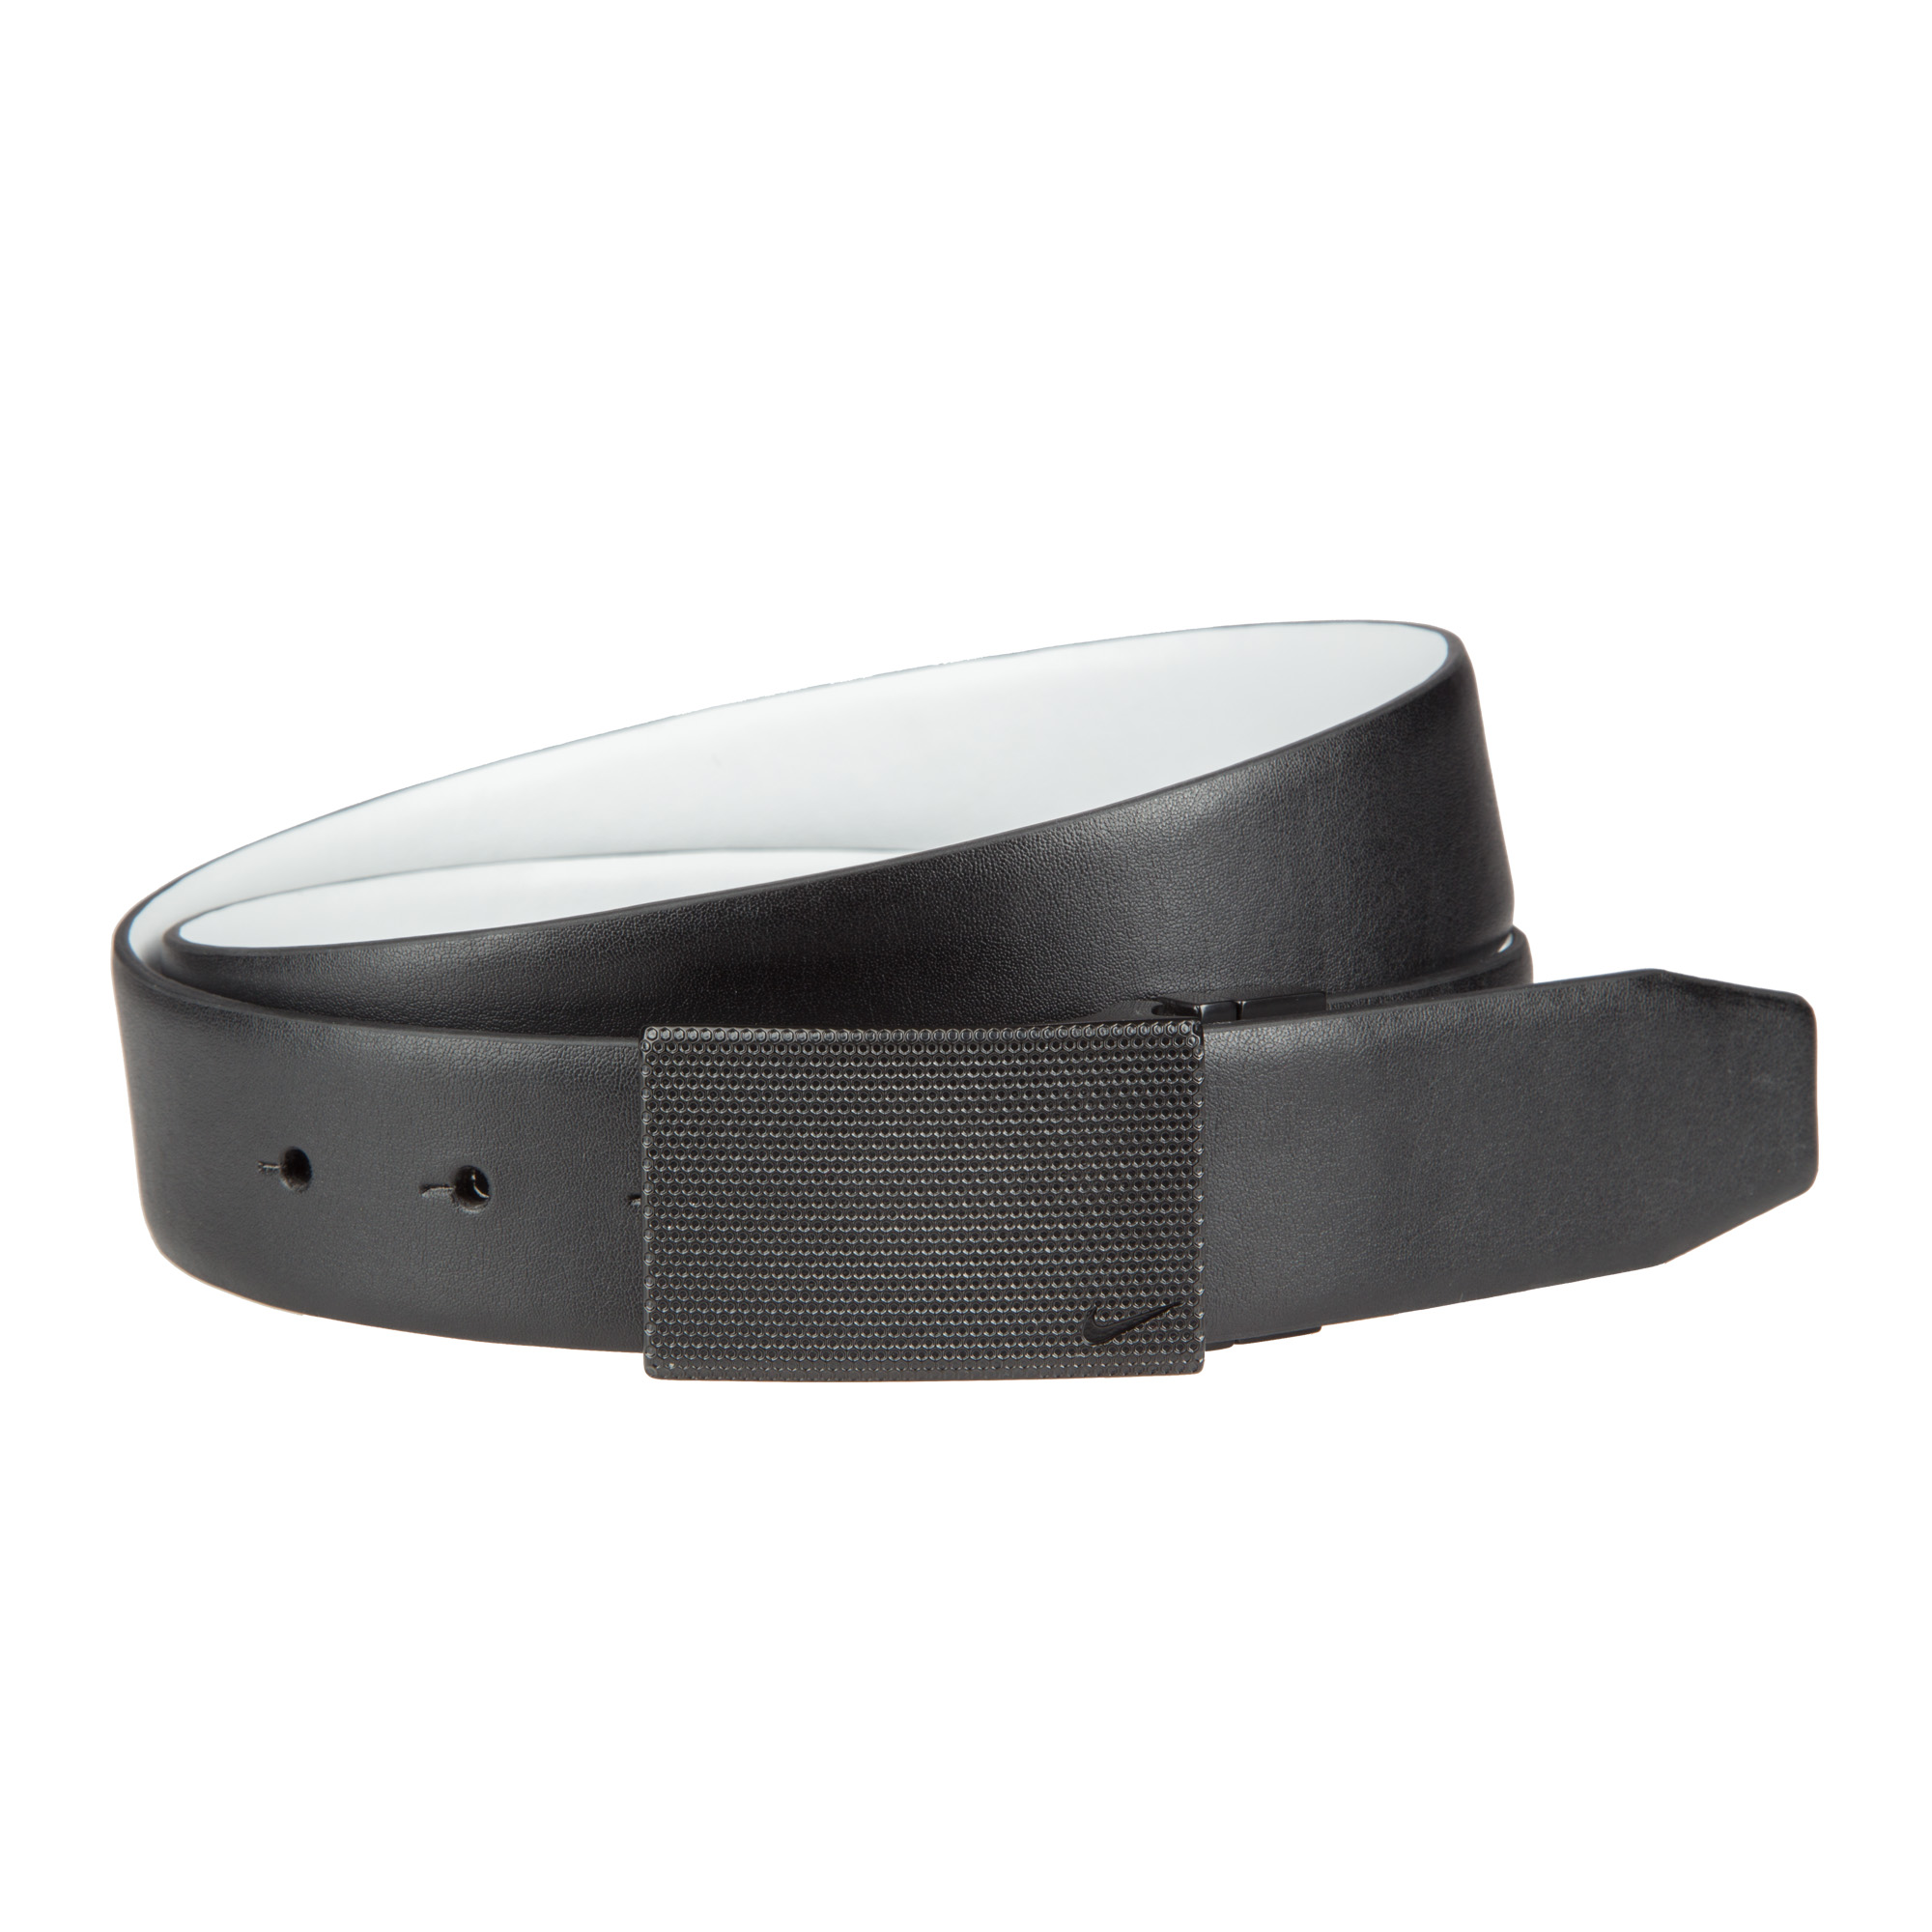 3b58dbadb78c10 Details about Nike Golf Mens SG Stealthy Plaque Reversible Belt - Black/White  - Pick Size!